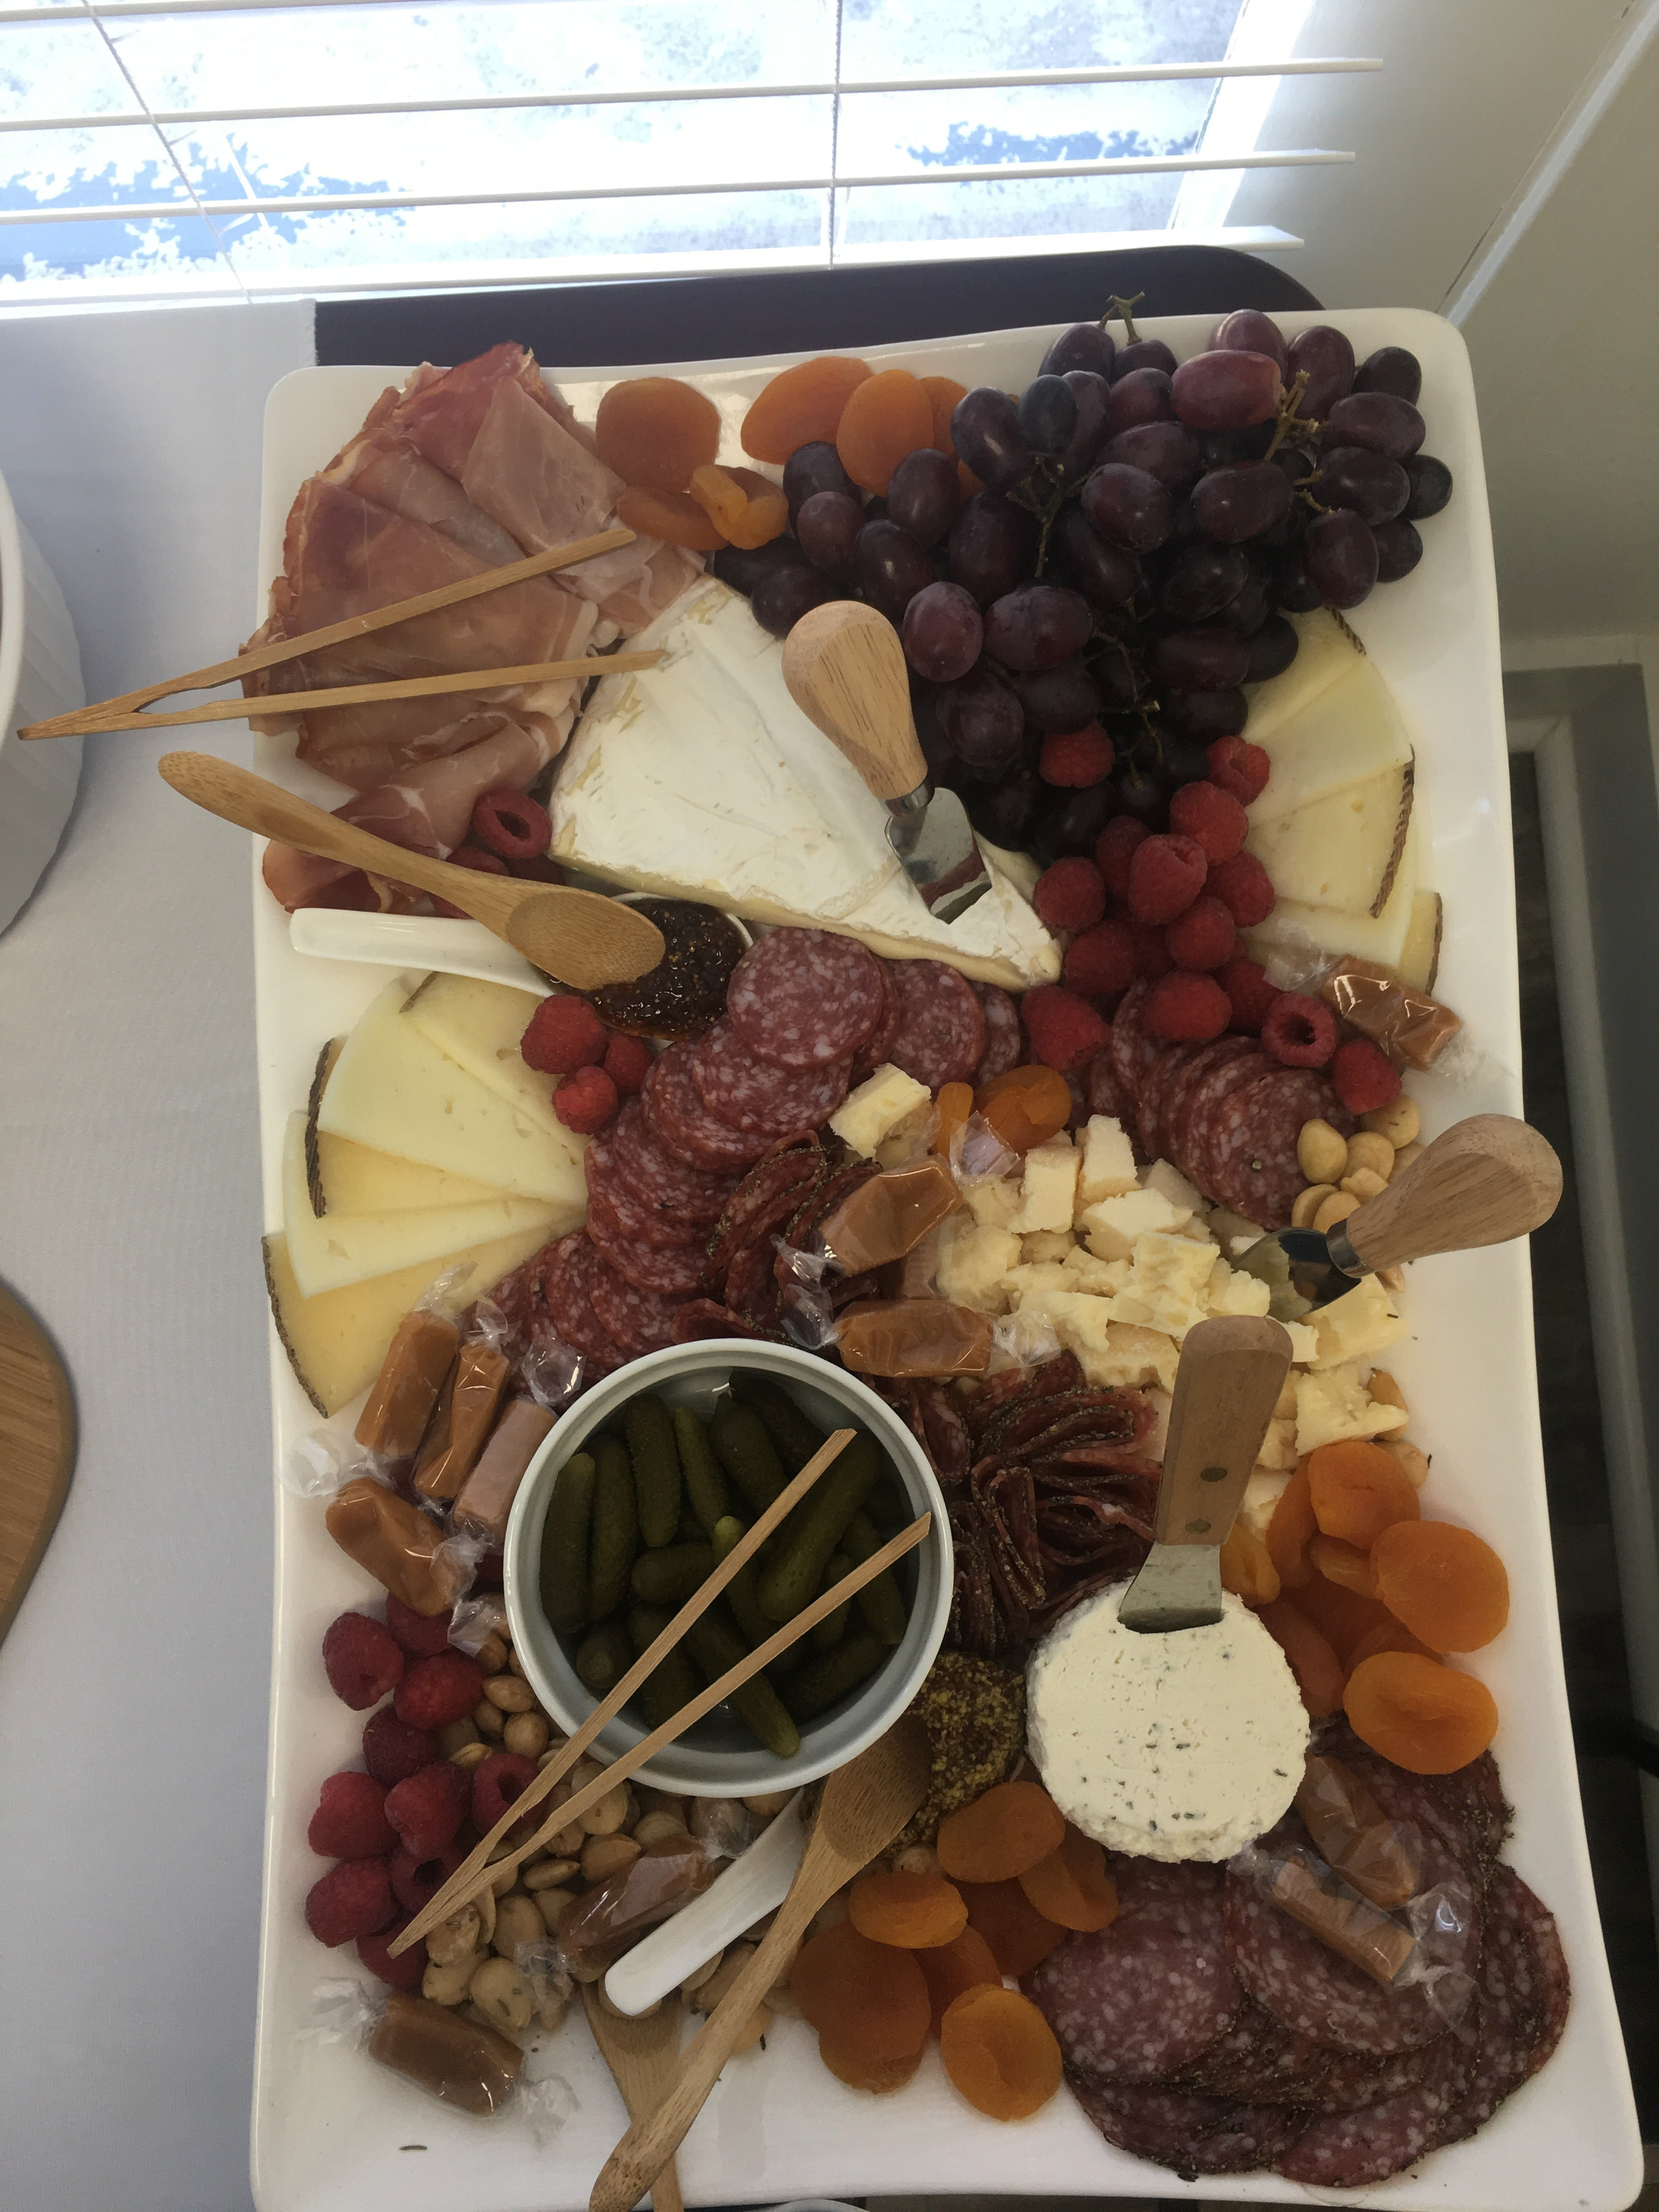 A platter of assorted ham, cheese, and fruit